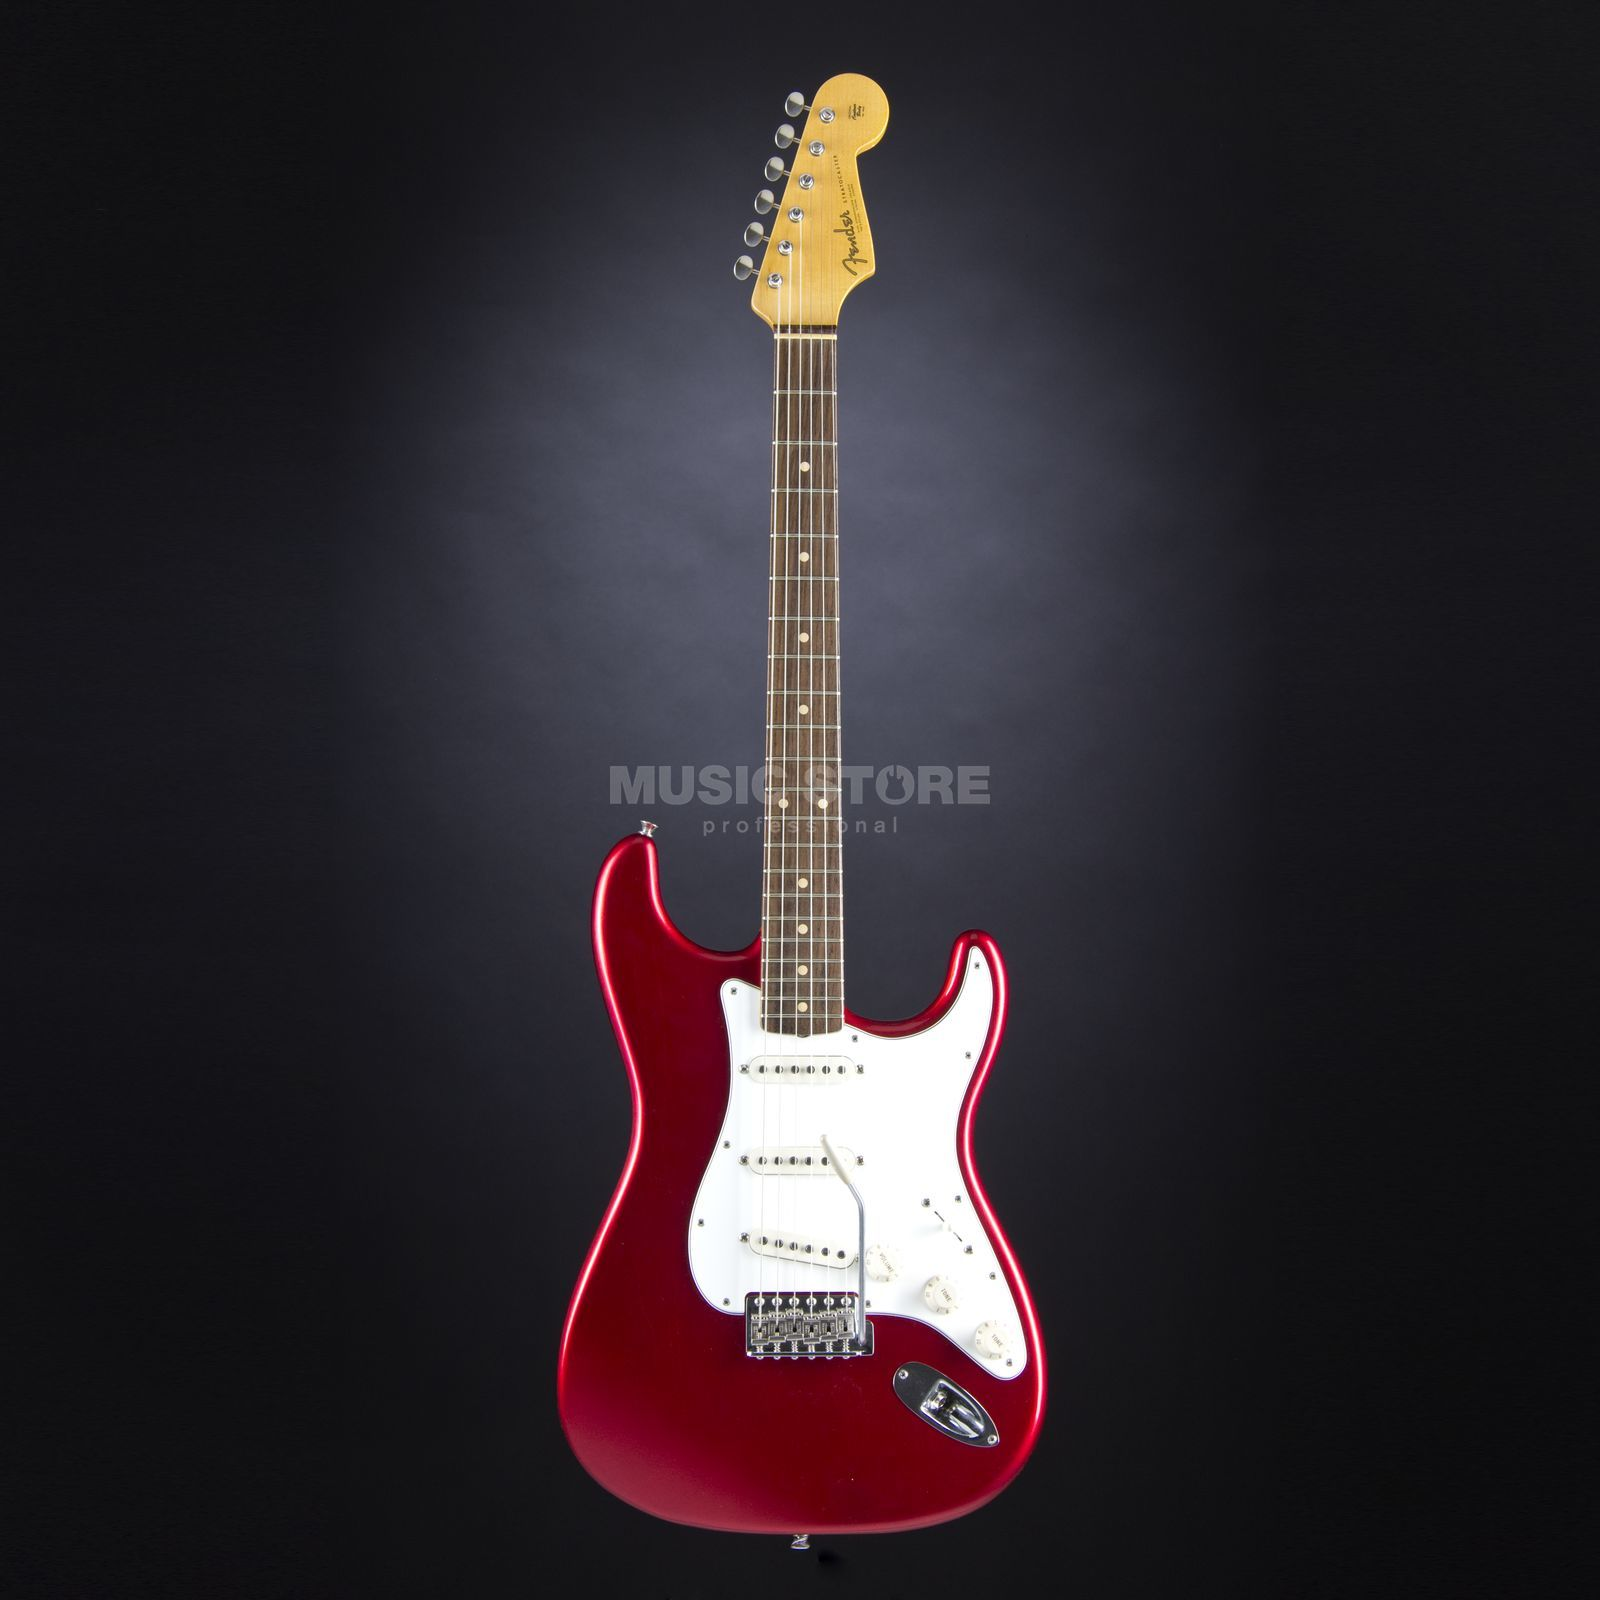 Fender '60s Relic Duo Tone Stratocaster Candy Apple Red #CZ521110 Produktbild